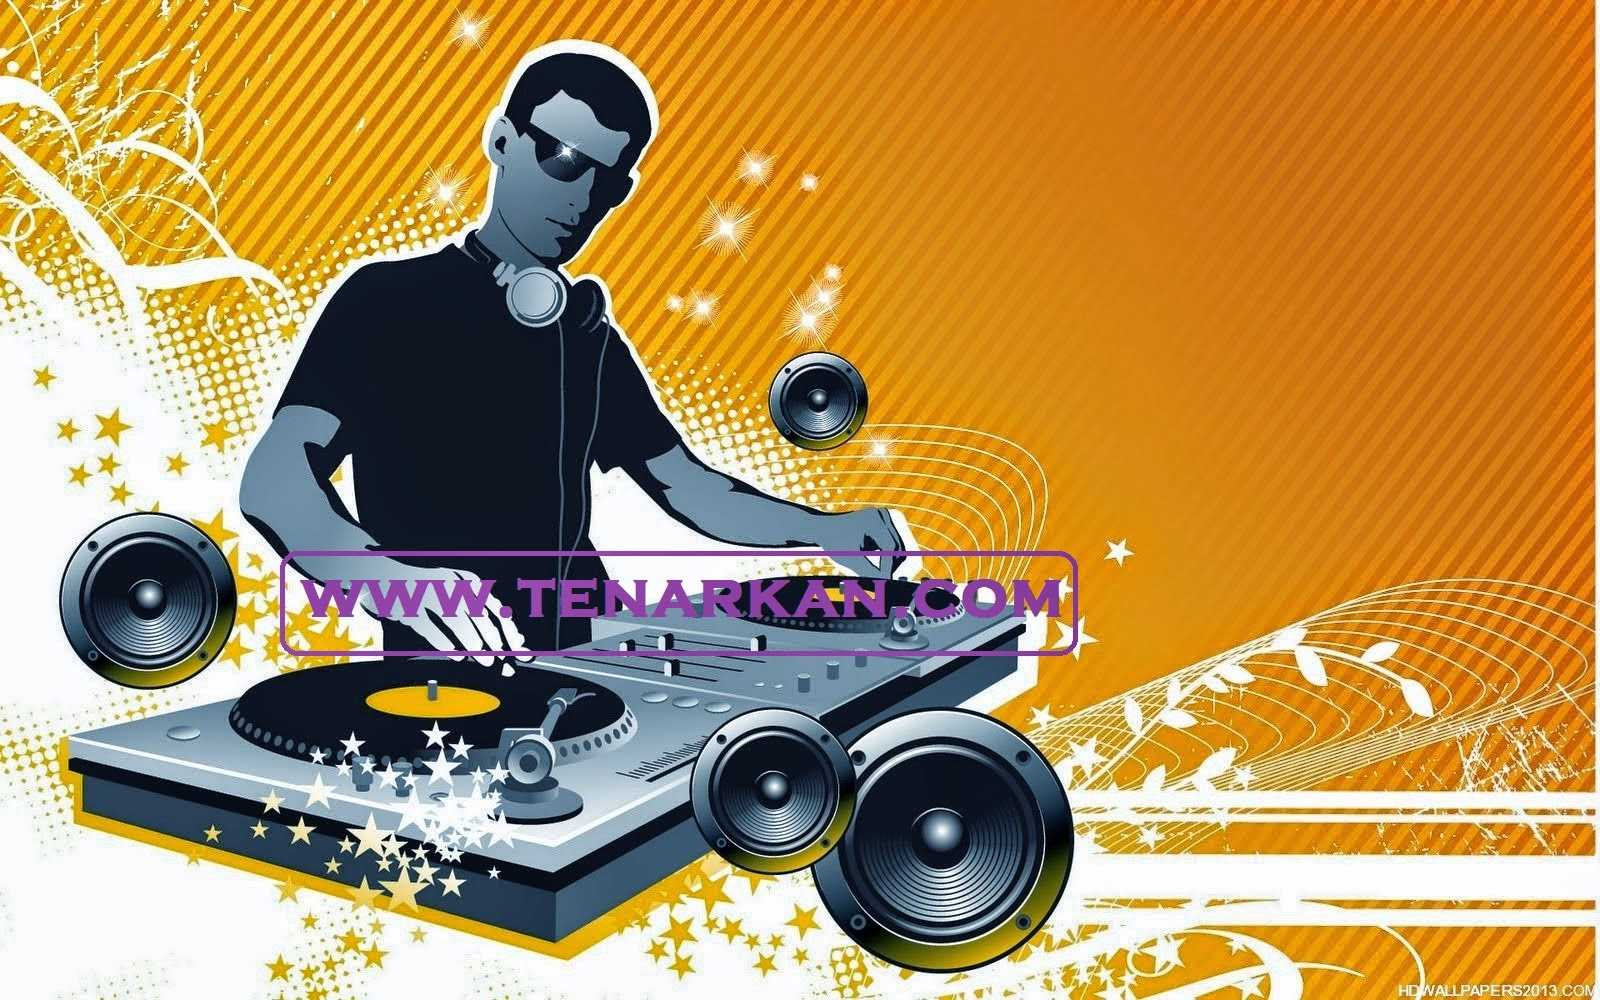 Download Dj Dangdut Remix Full Album Terkini 2015